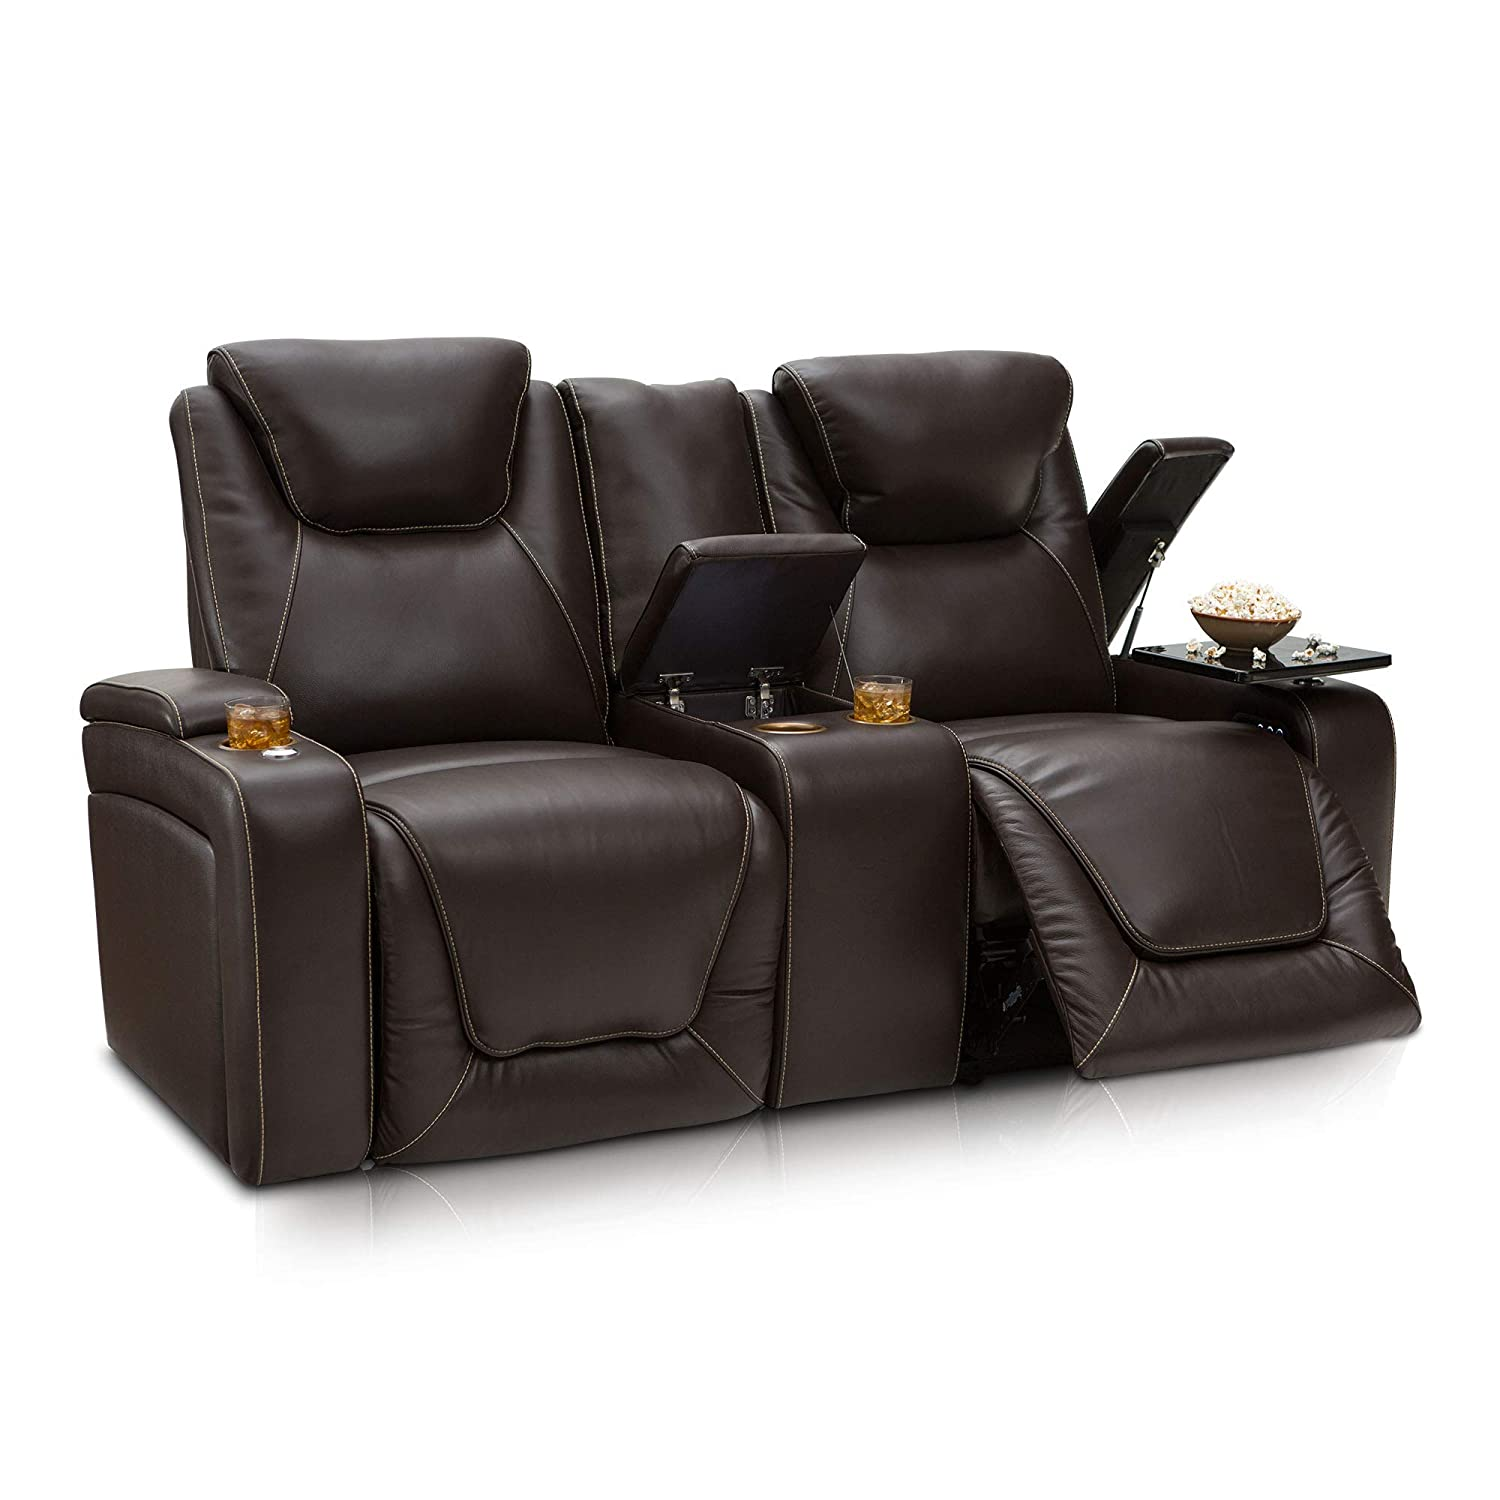 Seatcraft Vienna Home Theater Seating Leather Sofa Recline, Adjustable Headrest, Powered Lumbar Support, and Cup Holders (Loveseat, Brown)